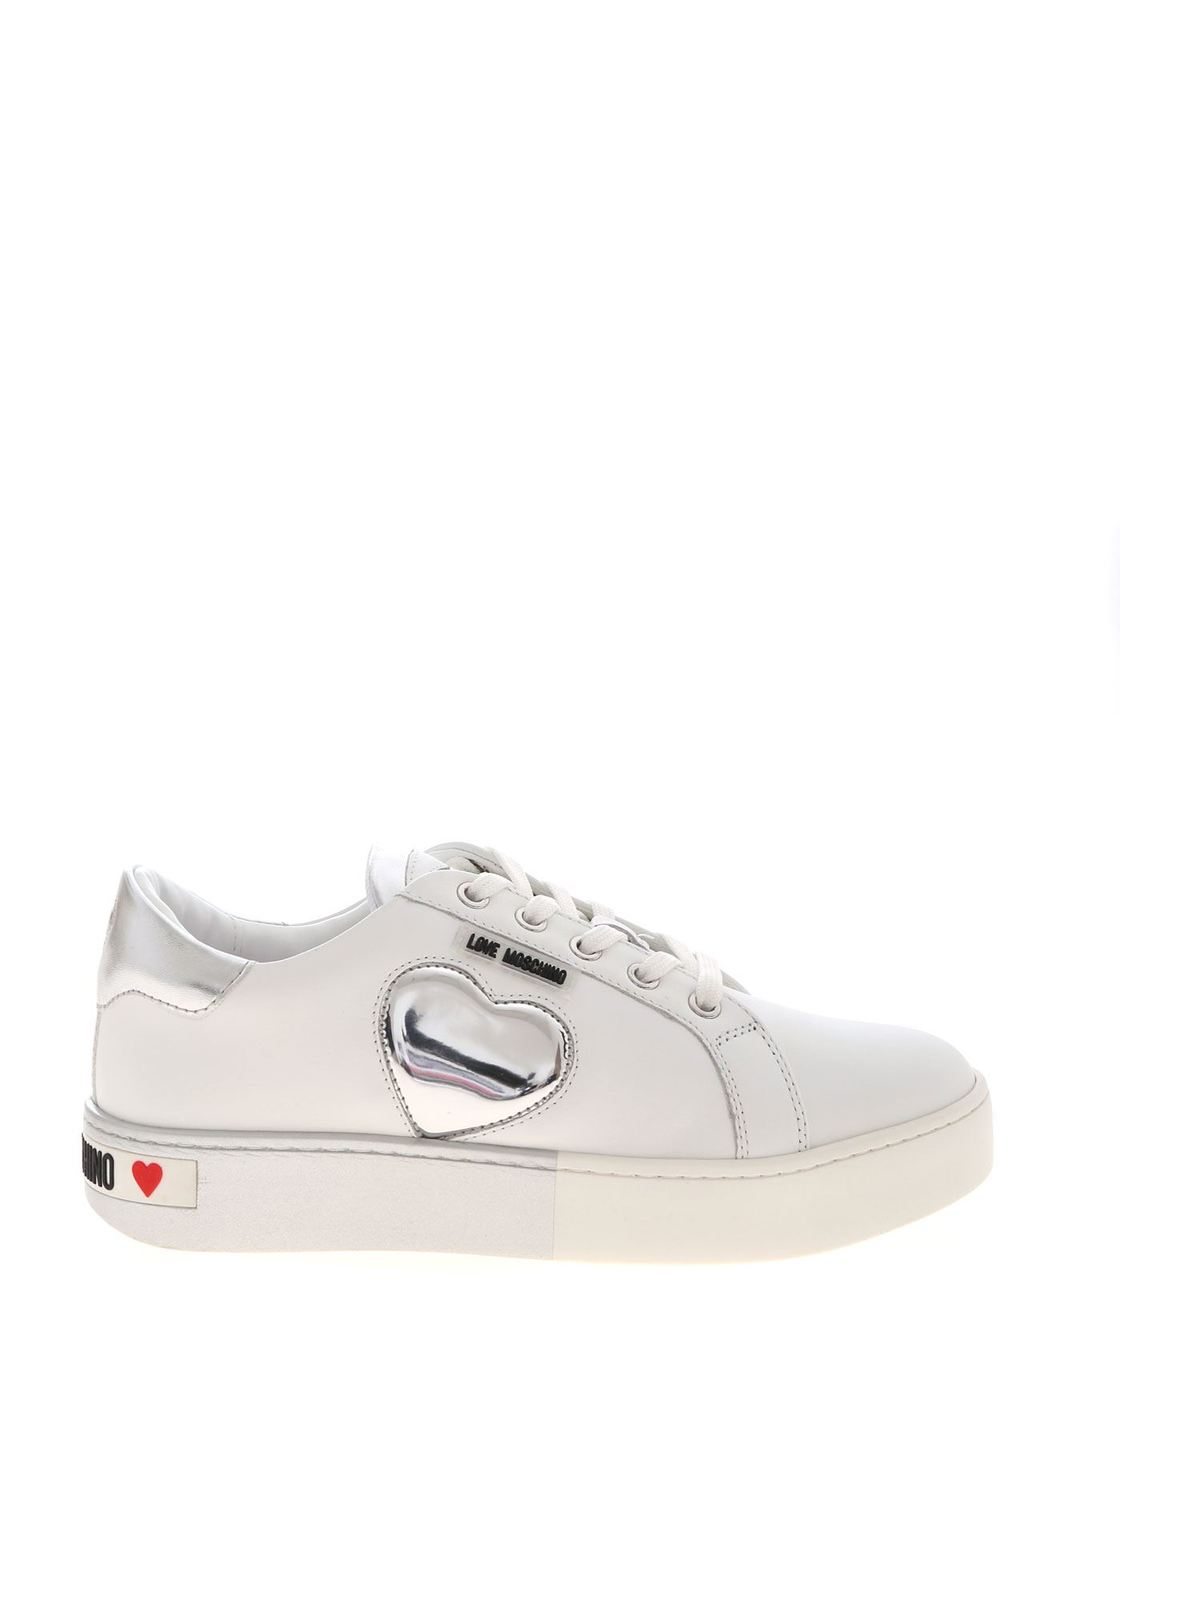 Love Moschino Platforms SNEAKERS IN WHITE AND SILVER